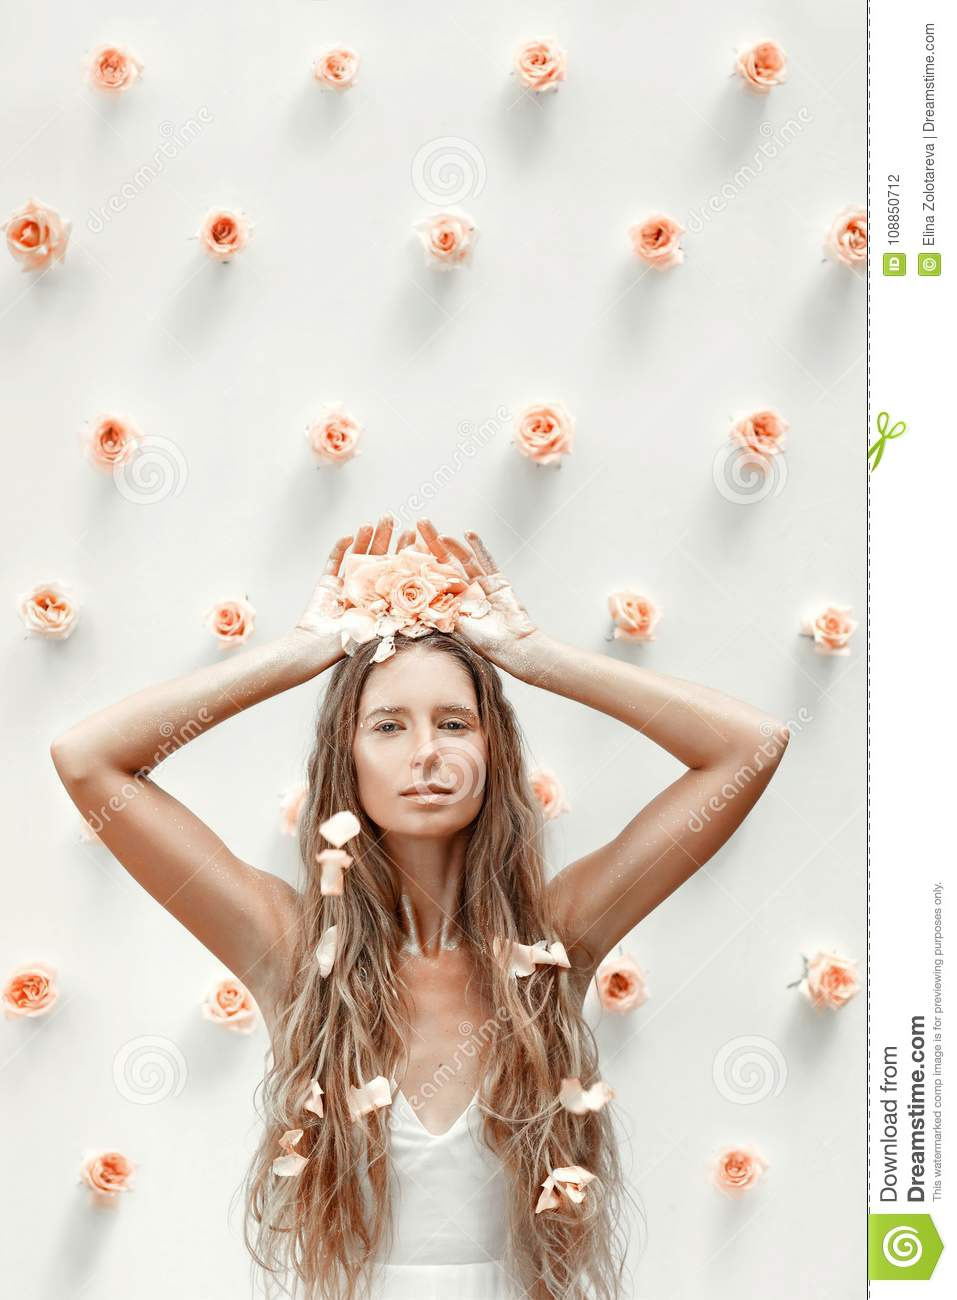 Fashion model portrait with roses and golden dust